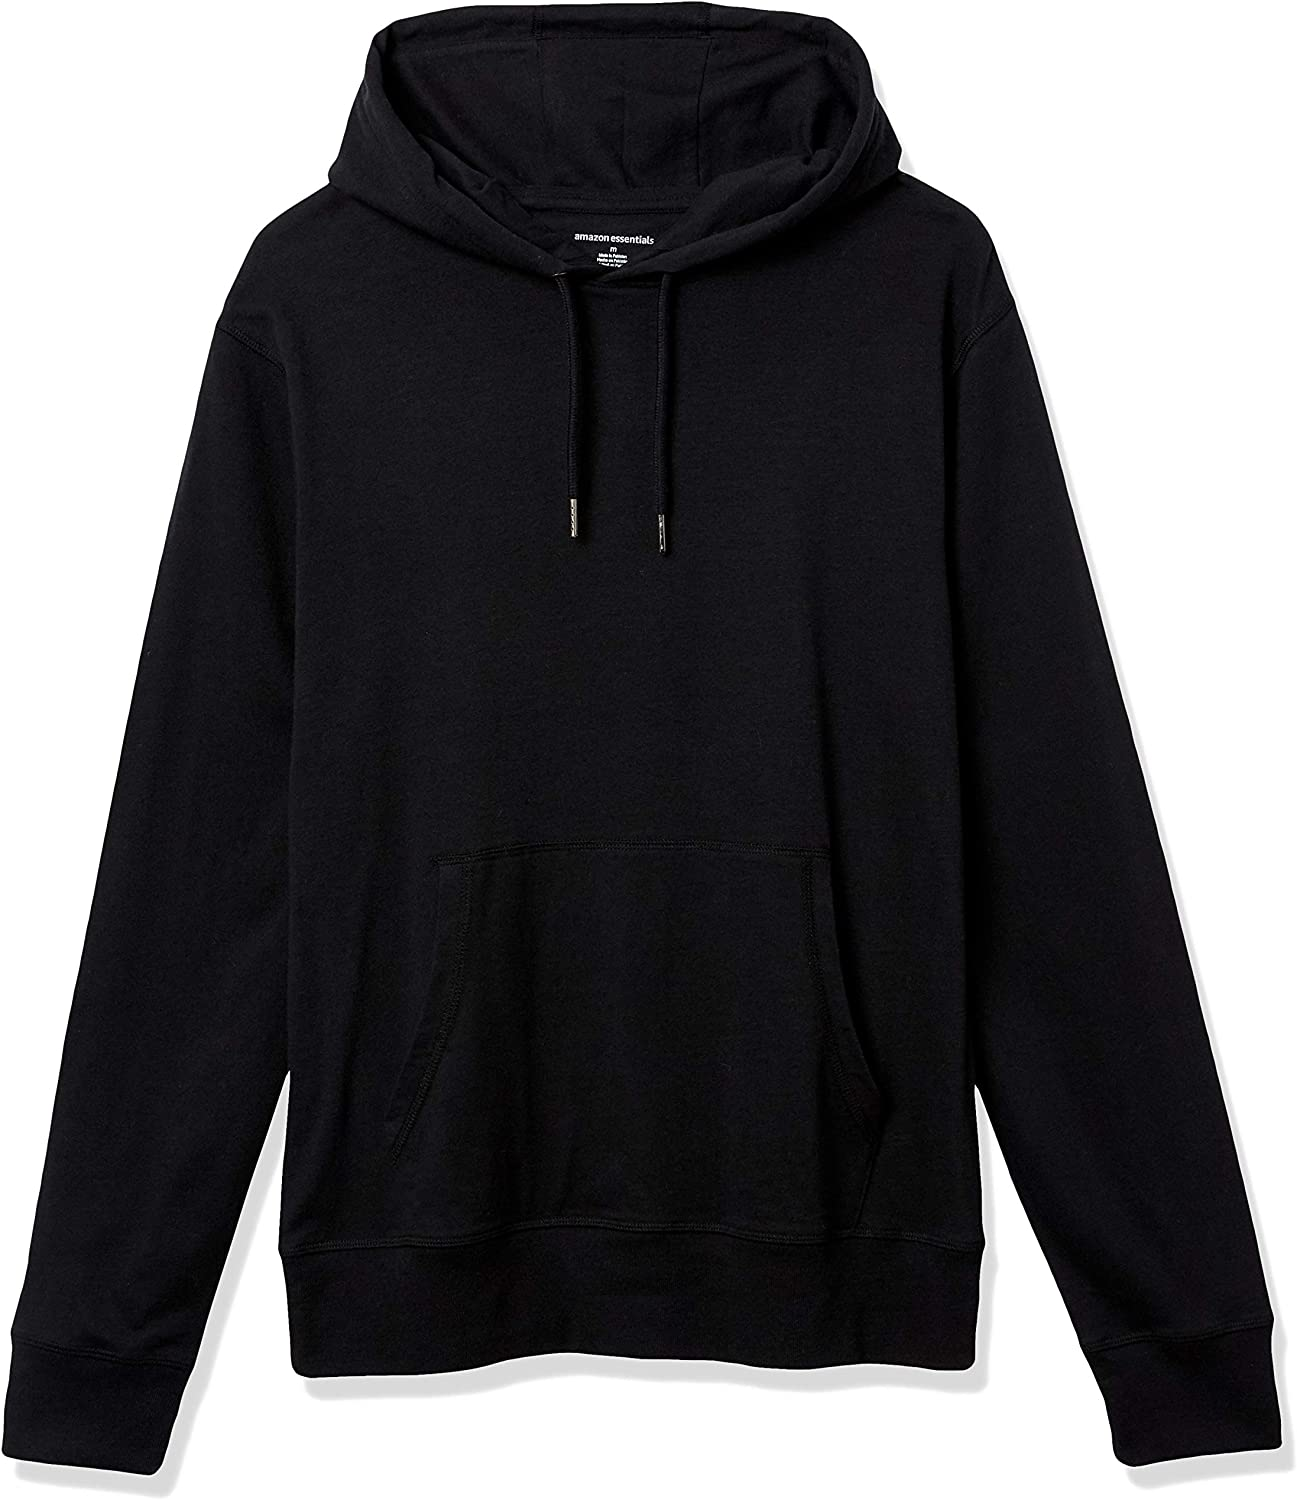 Essentials Men's Lightweight Jersey Pullover Hoodie: Clothing